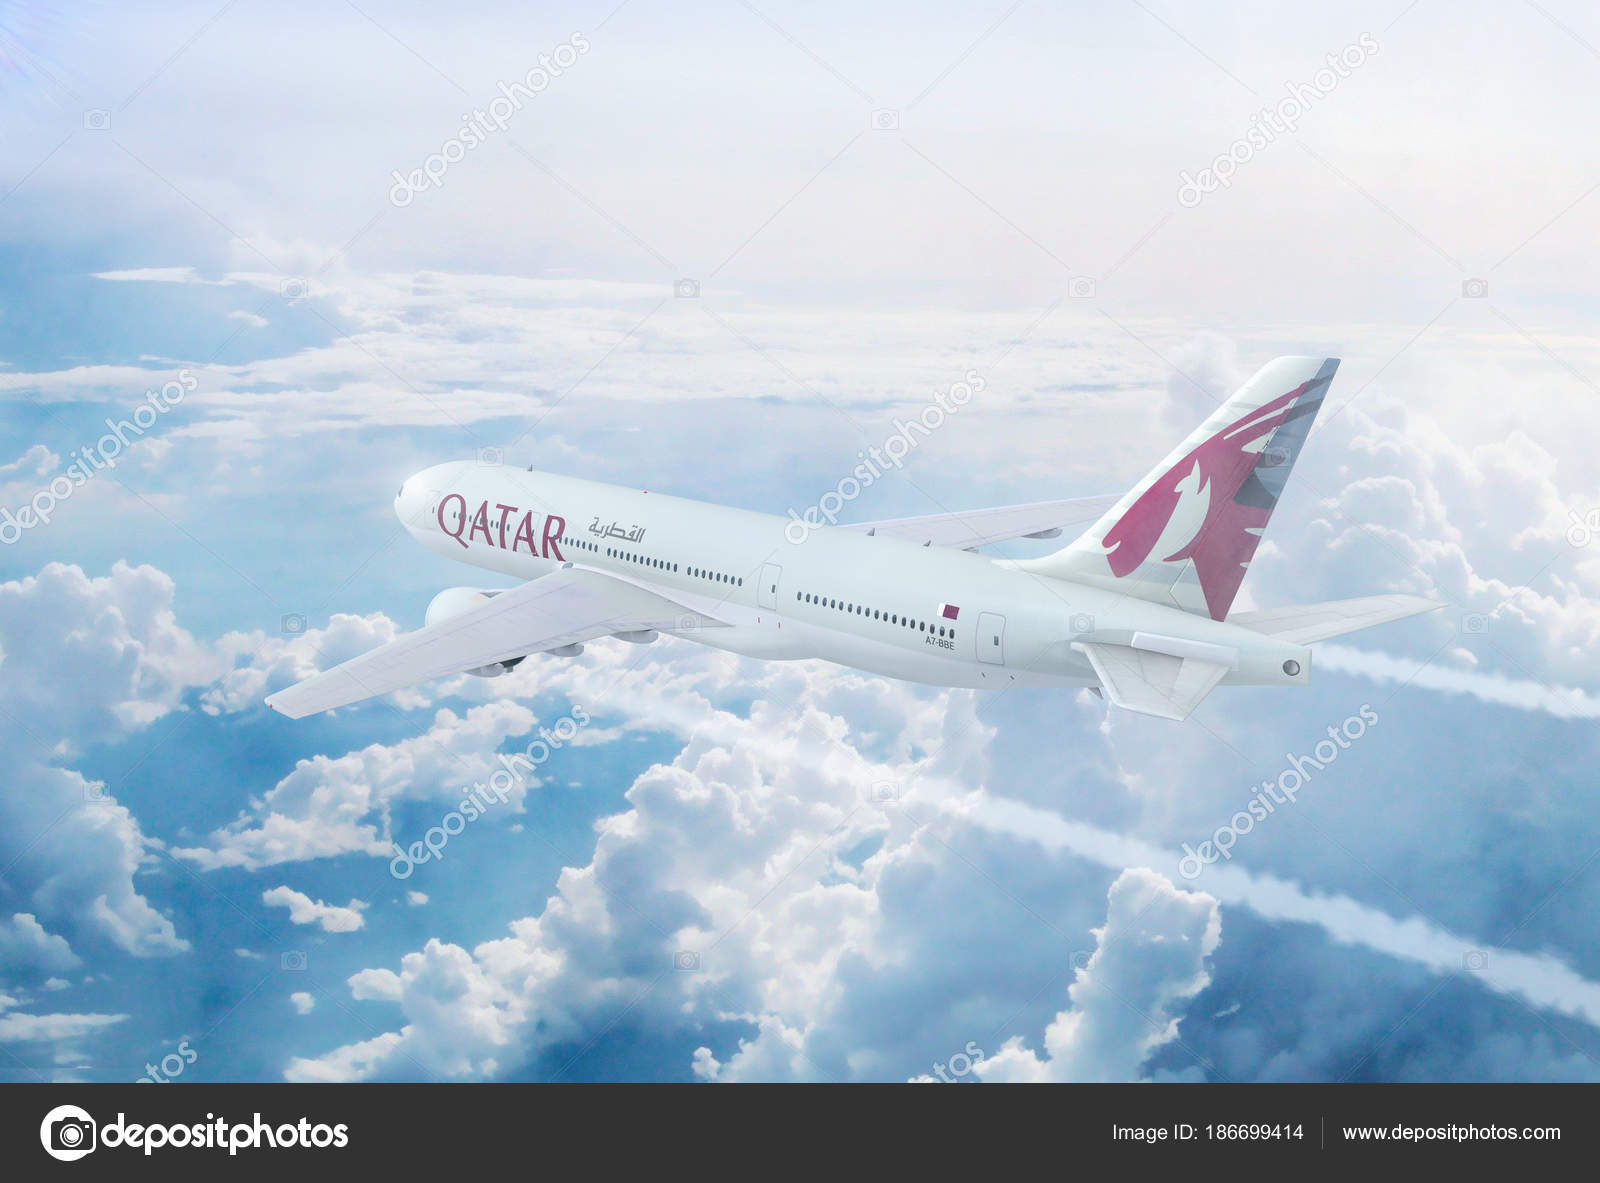 Aerial In Flight View Of Qatar Airways Boeing 777 On The Worlds Longest Commercial Journey From Doha To Auckland New Zealand Photo By